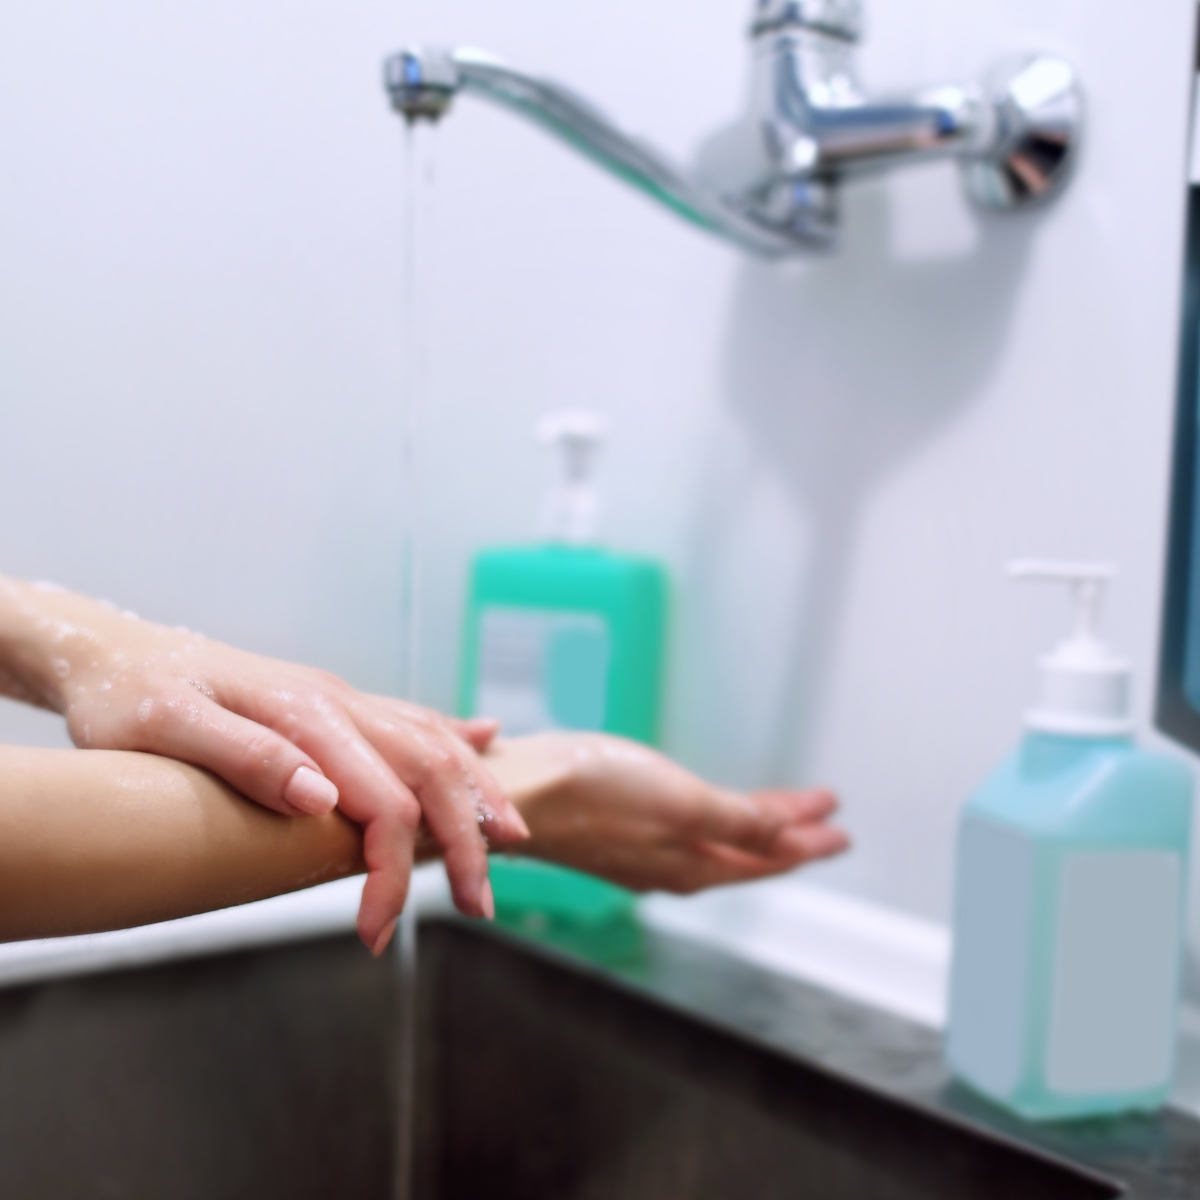 The importance of hand hygiene at work